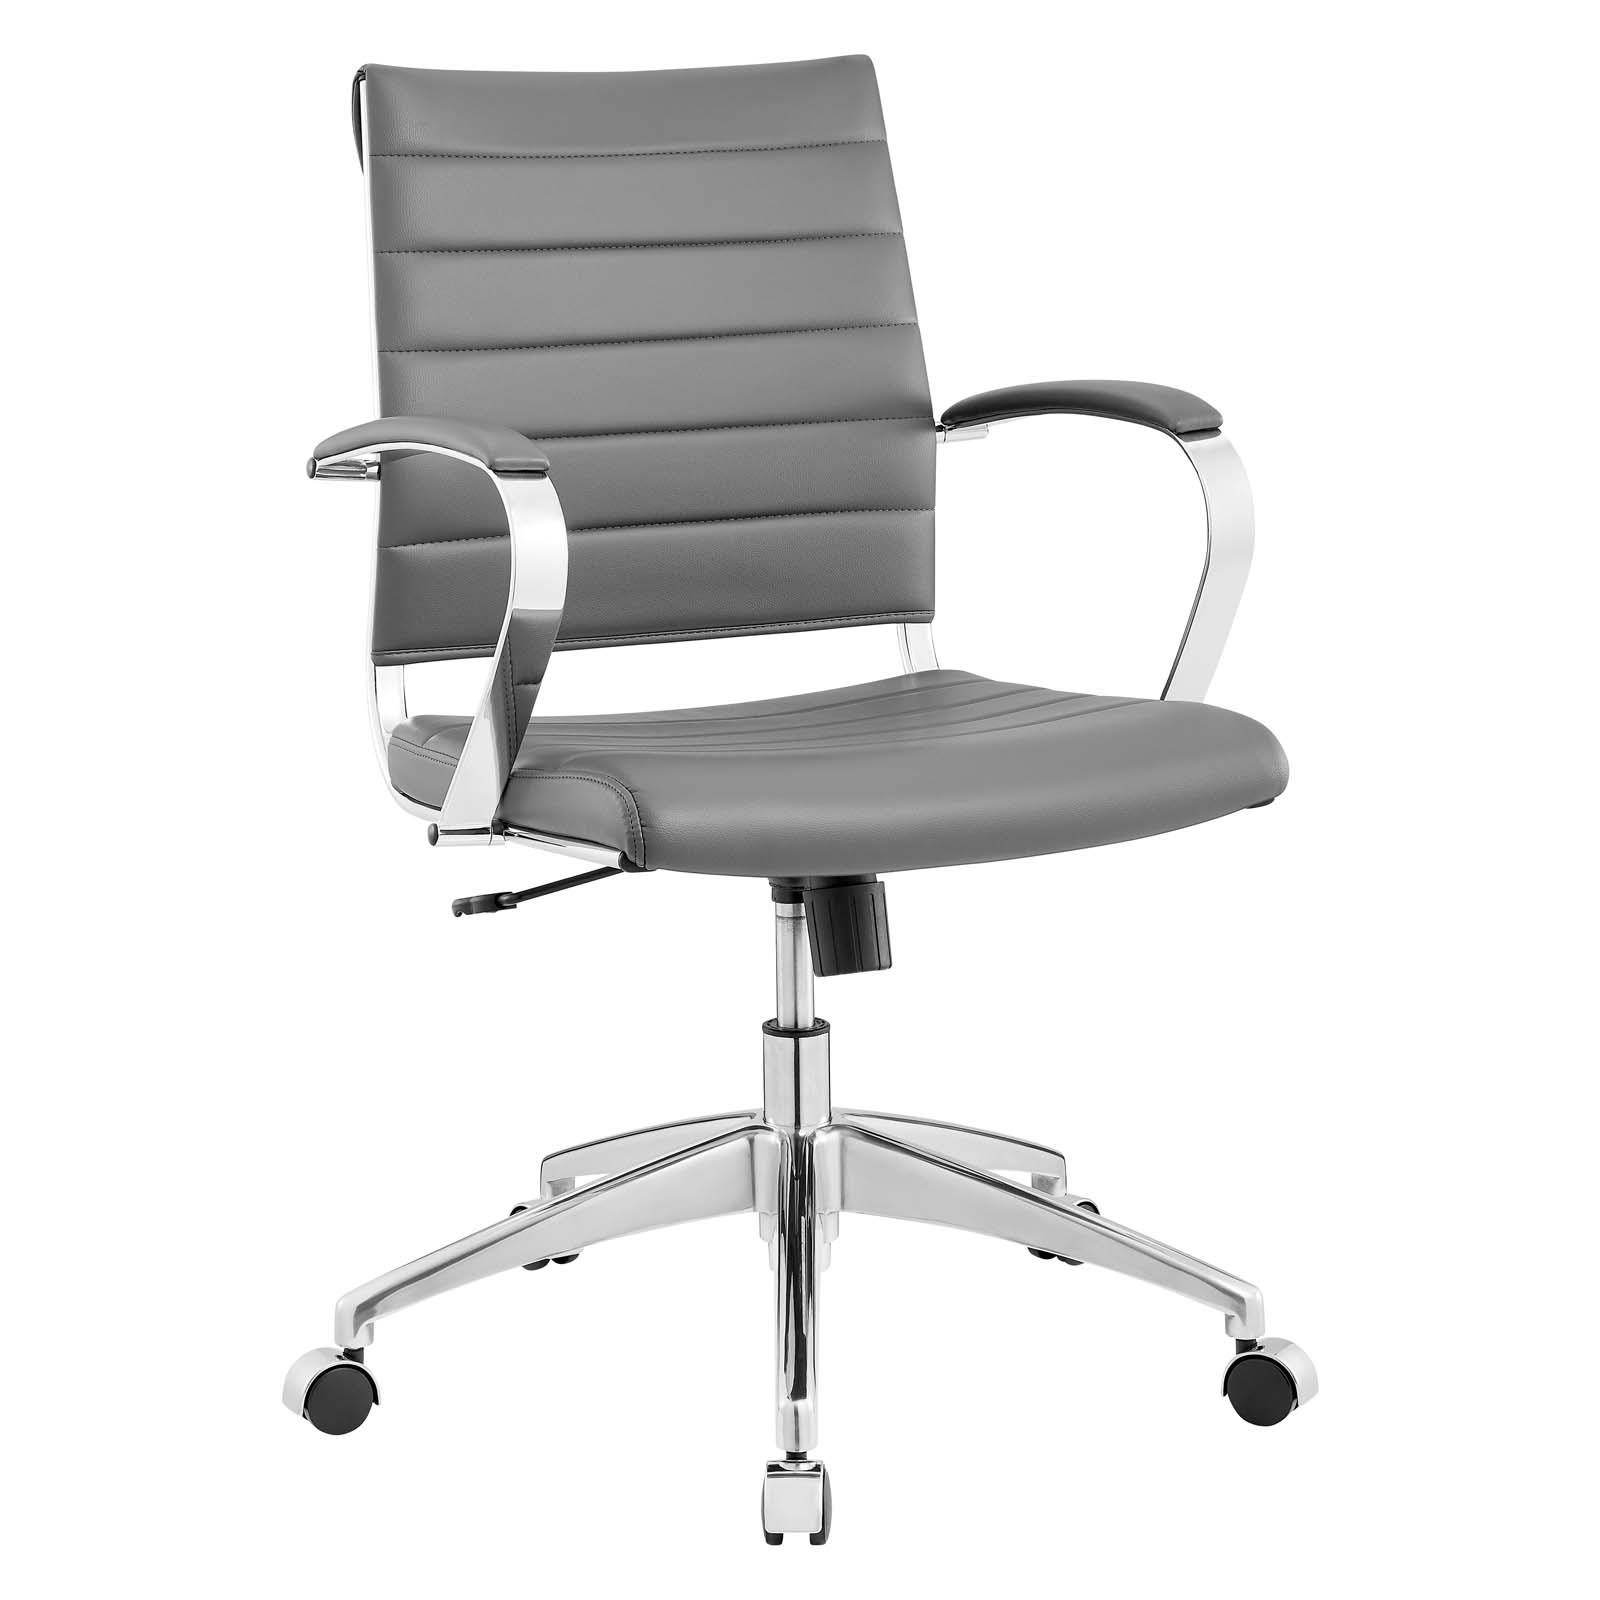 Back Office Chair in Gray